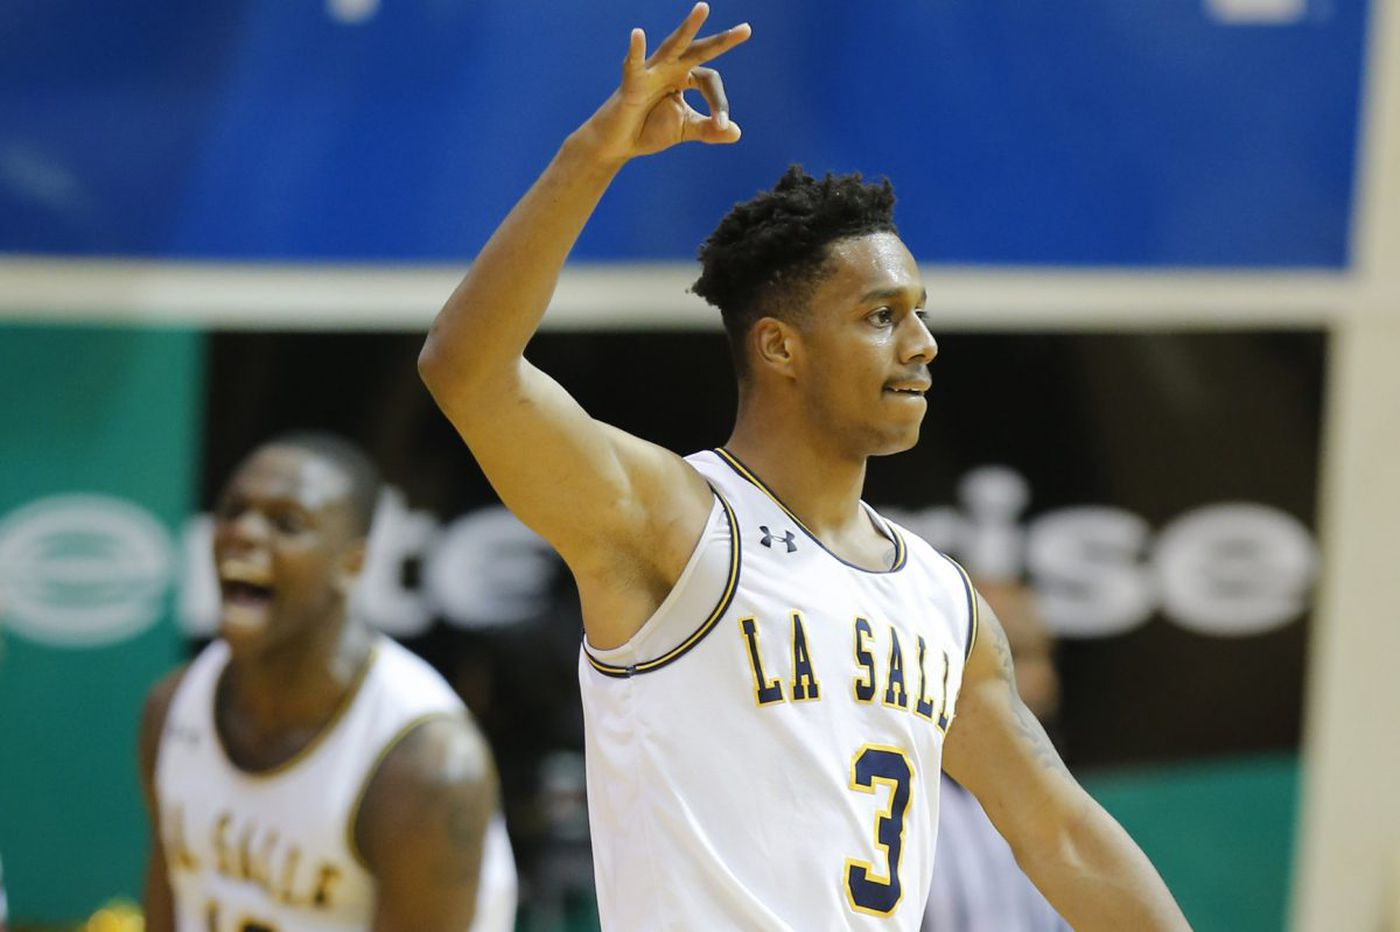 La Salle downs St. Joseph's in a desperation thriller